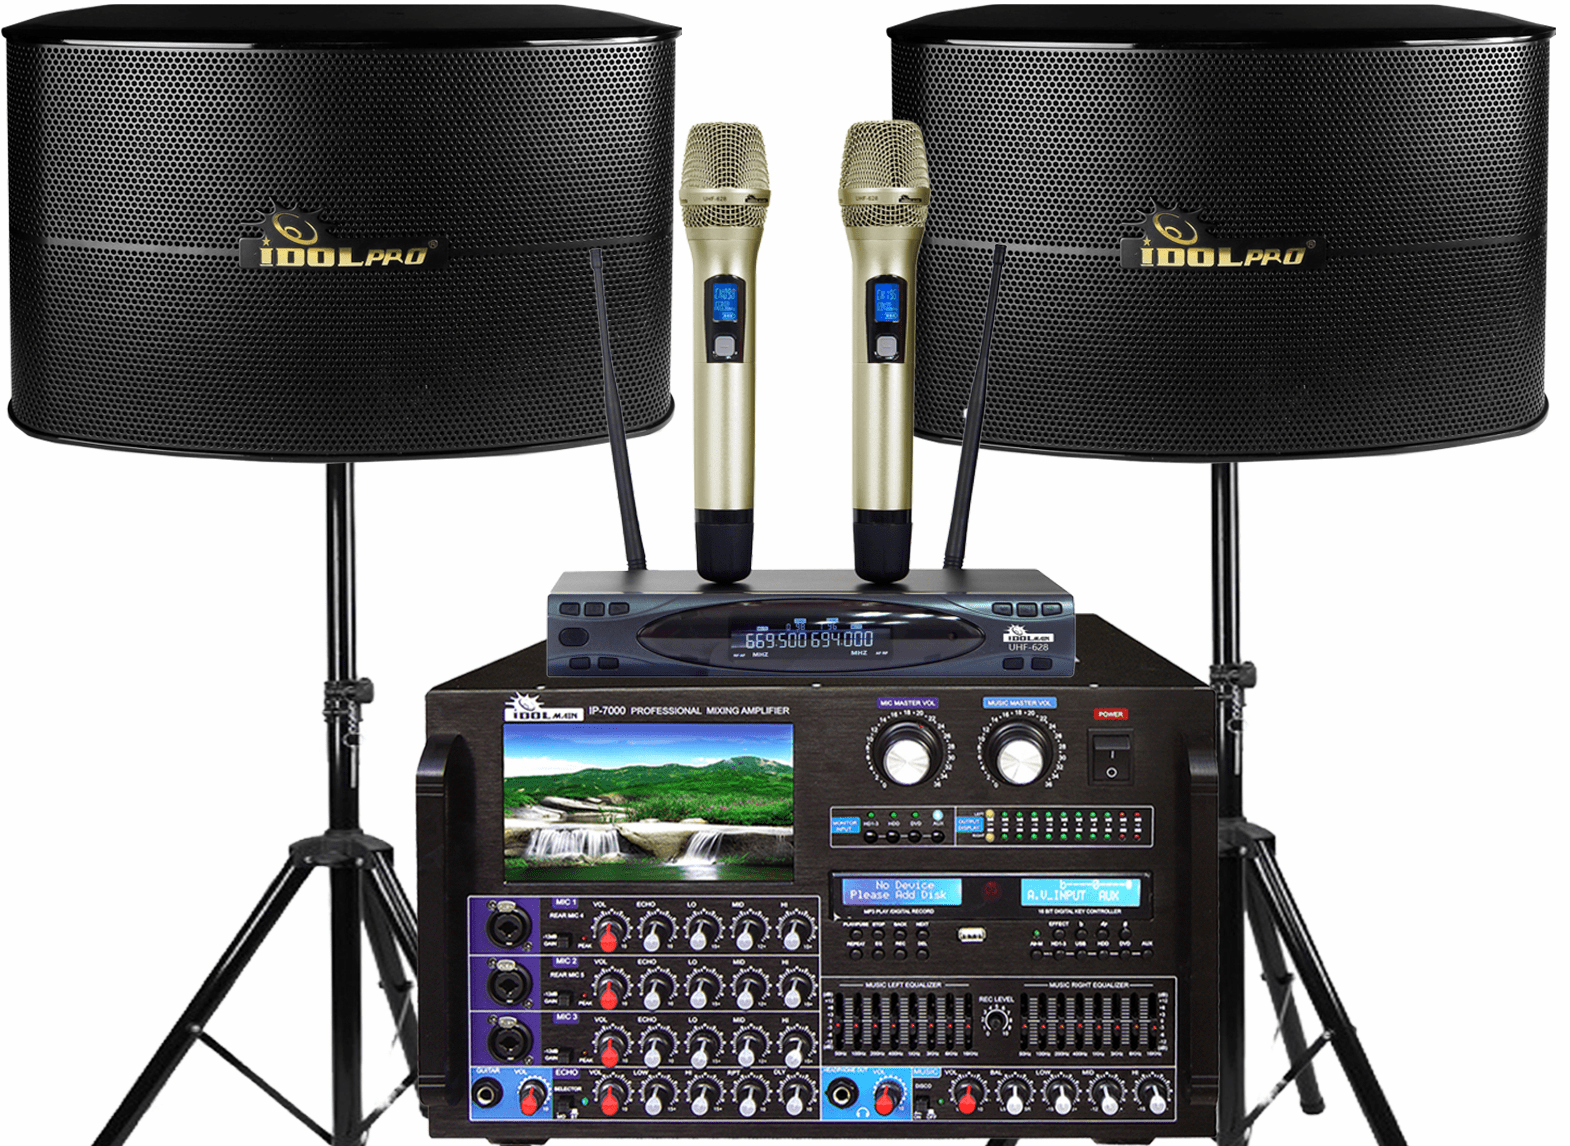 "<font color="" blue"">PACKAGE 6 </font> -- IPS-13G Speakers & IP-7000 Mixing Amplifier & UHF-628 Wireless Microphone"